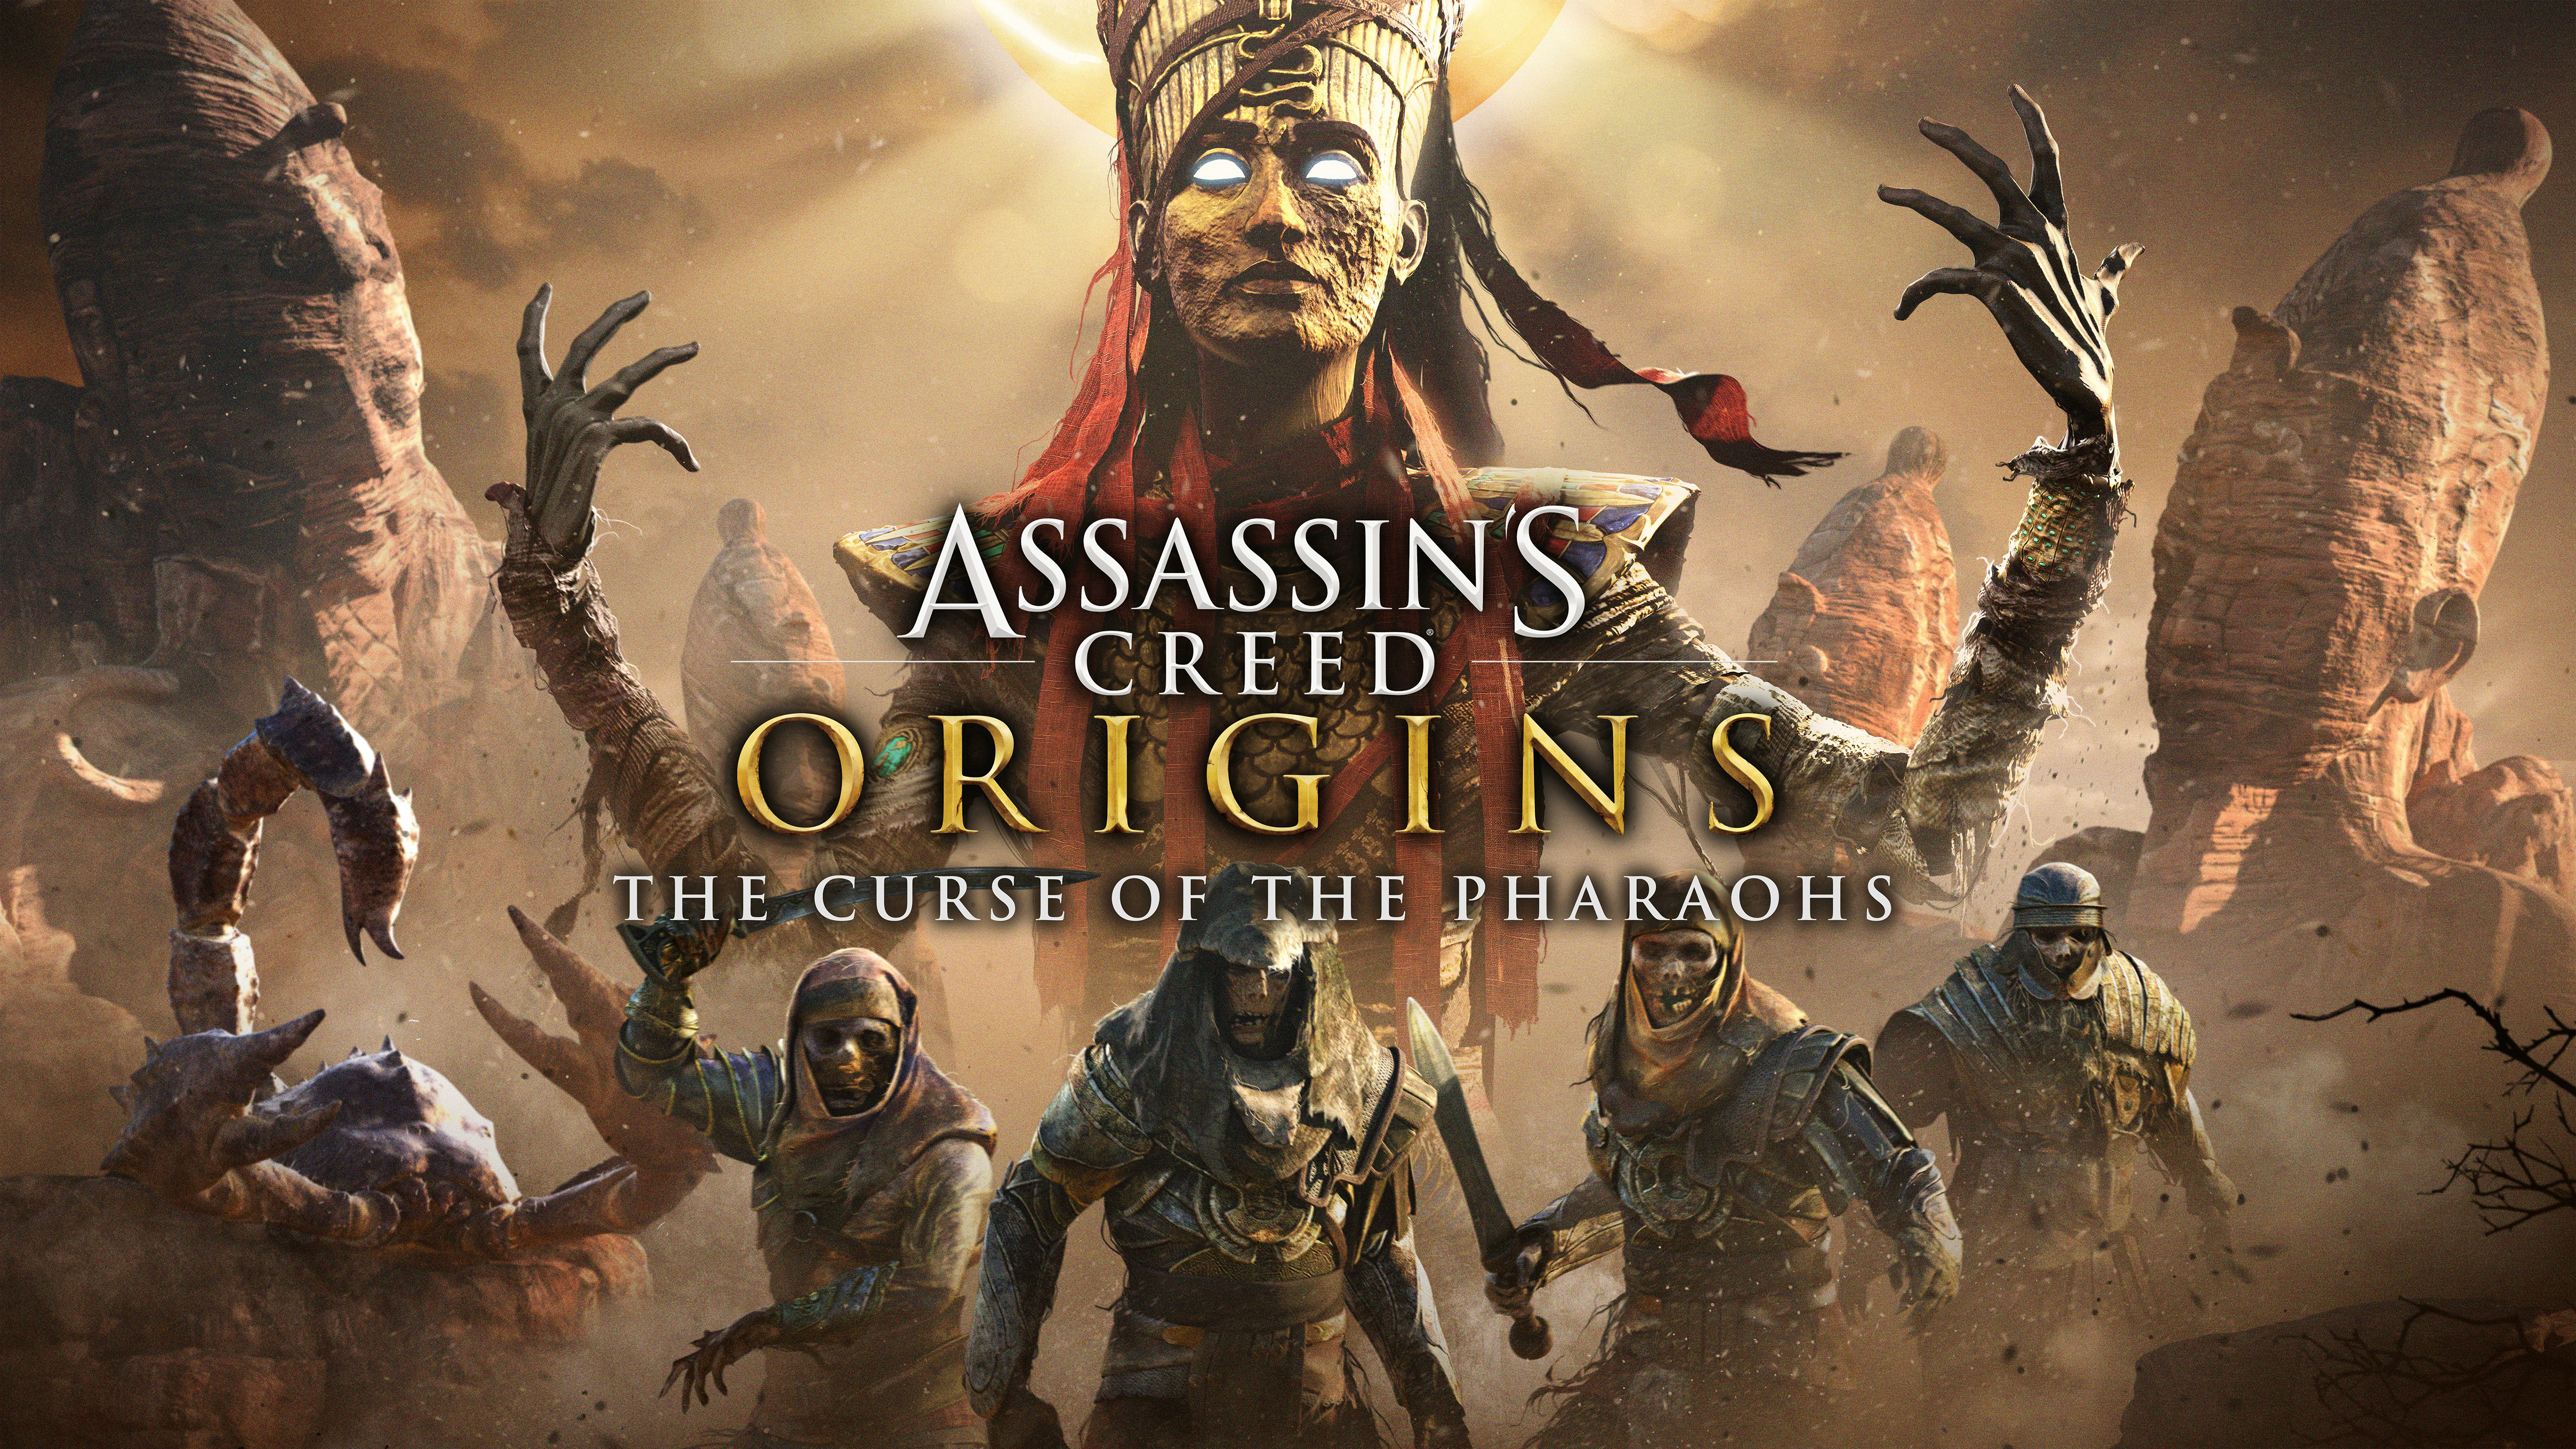 Assassins Creed Origins The Curse of The Pharoahs 5K4773916867 - Assassins Creed Origins The Curse of The Pharoahs 5K - The, Pharoahs, Origins, Game, Curse, Creed, Assassins